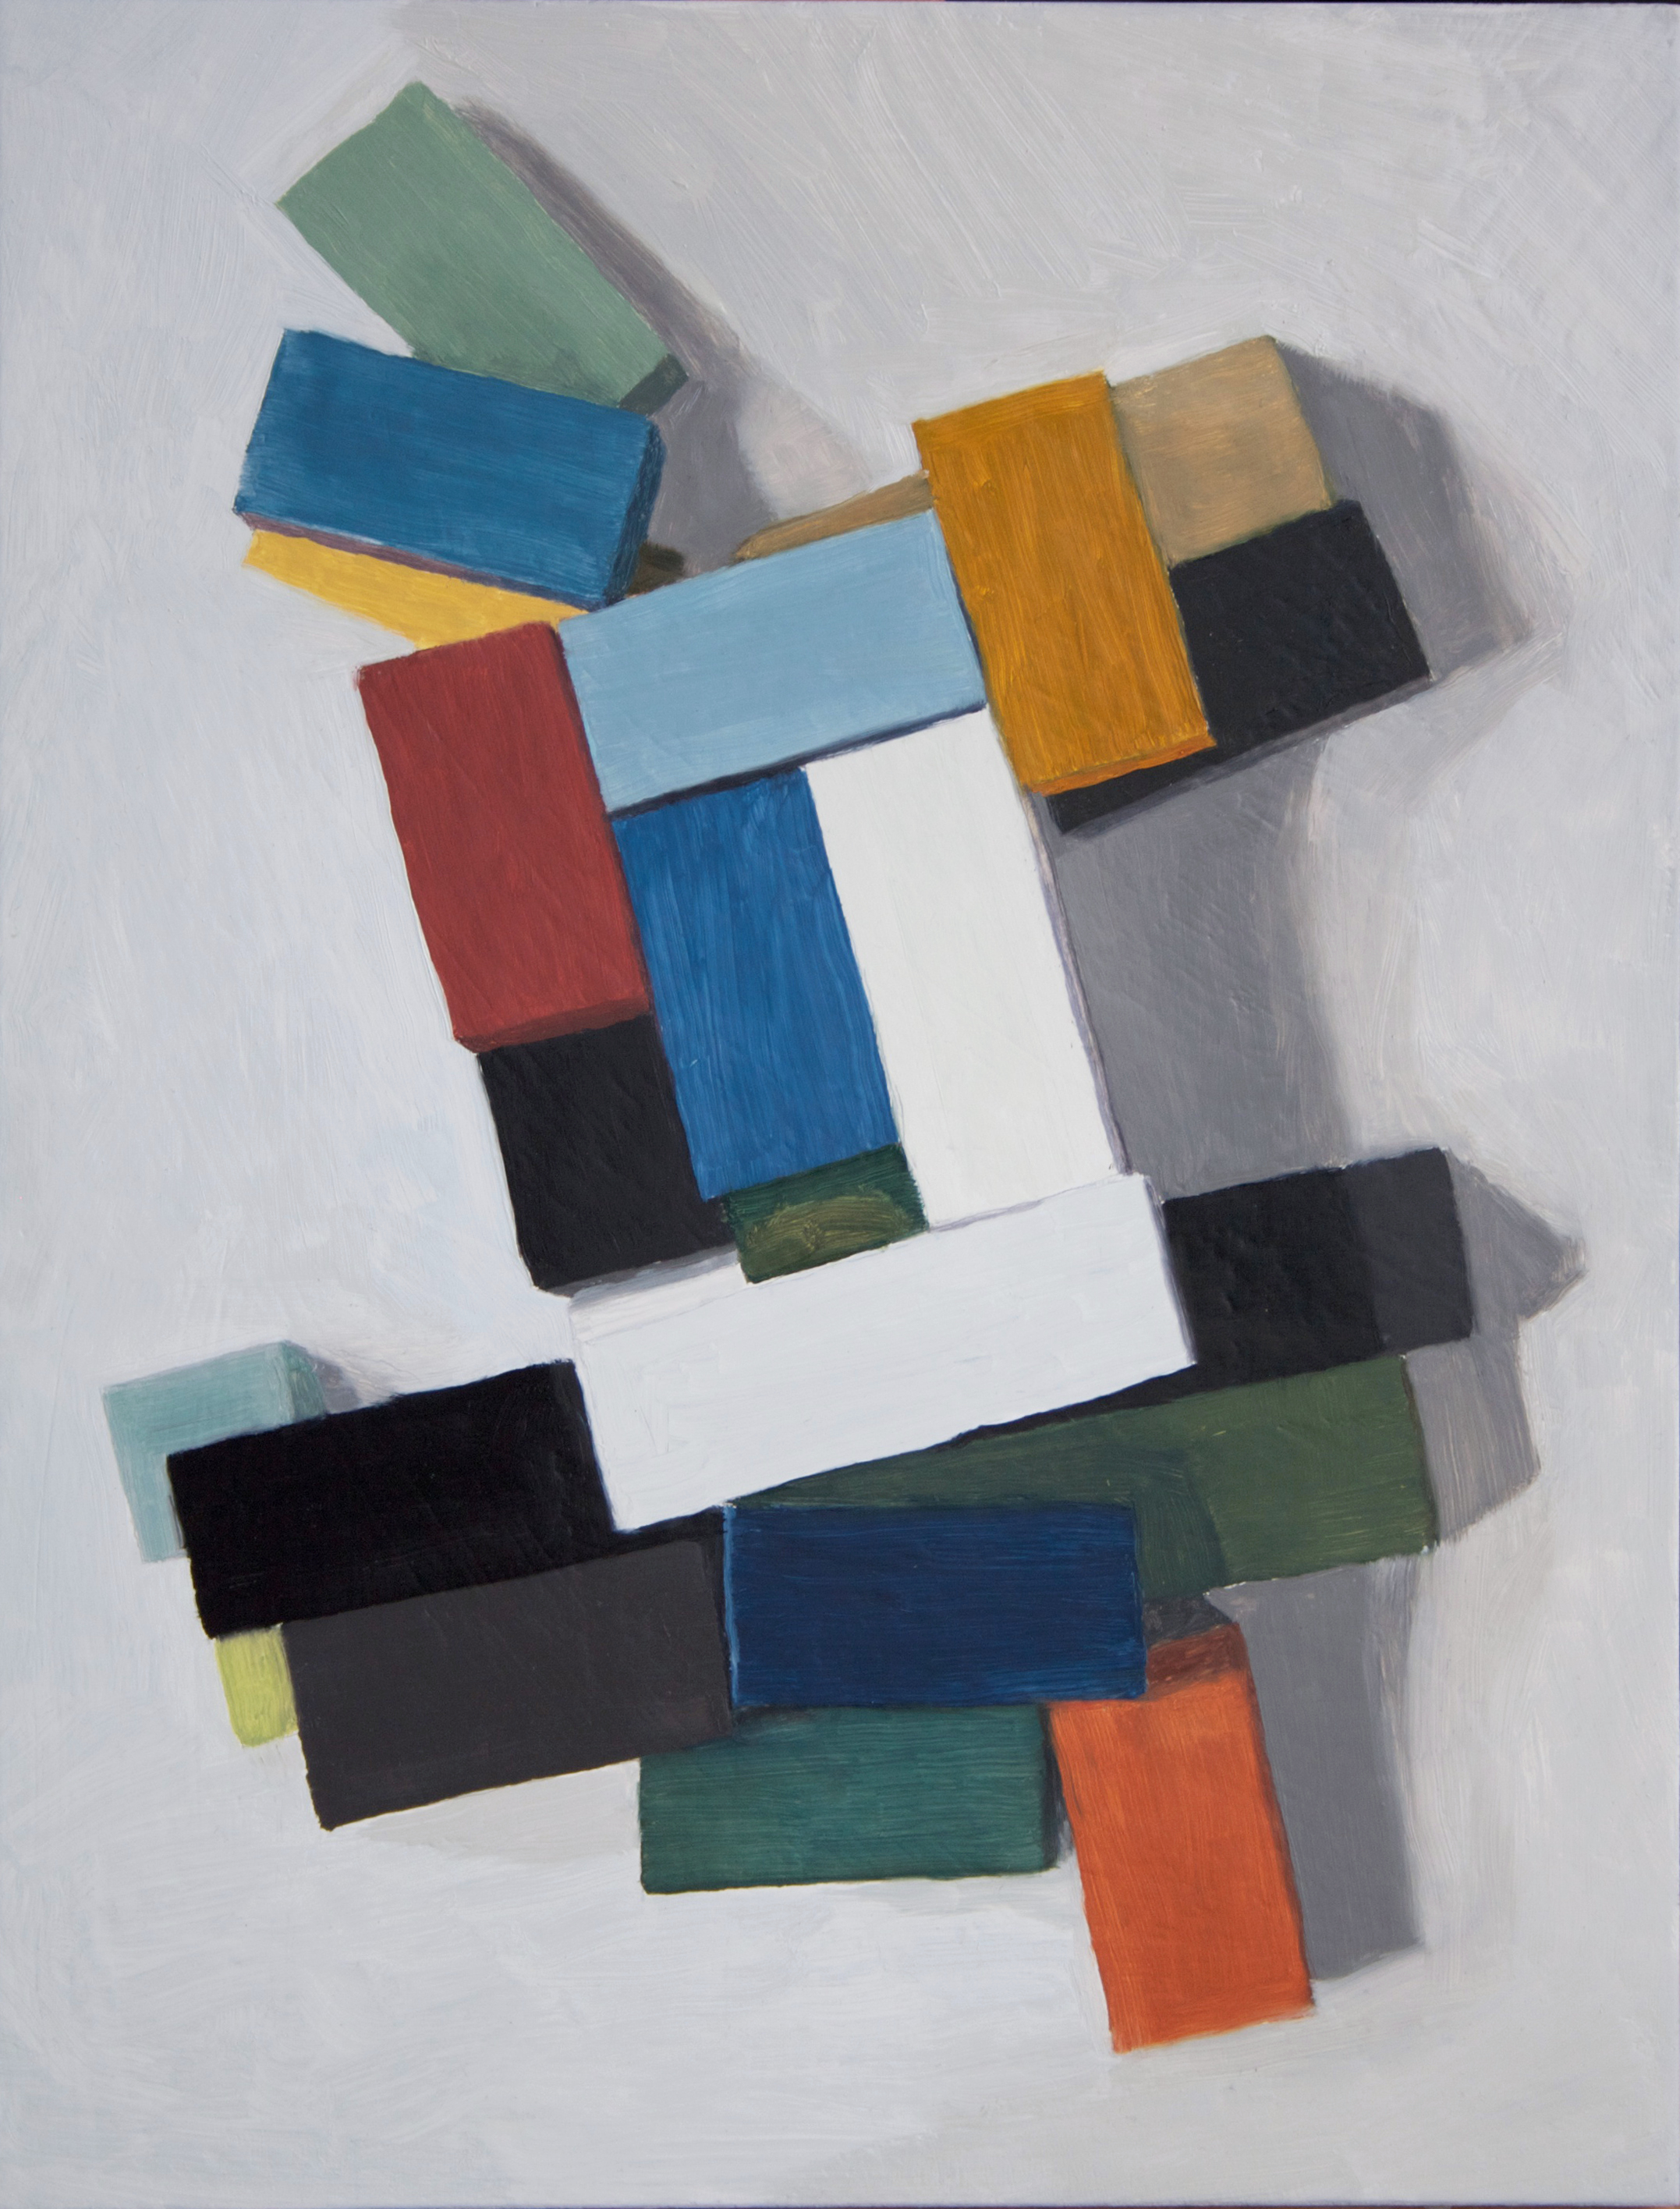 Right Angle , 2013 Oil on wood, 43 x 33 cm SOLD